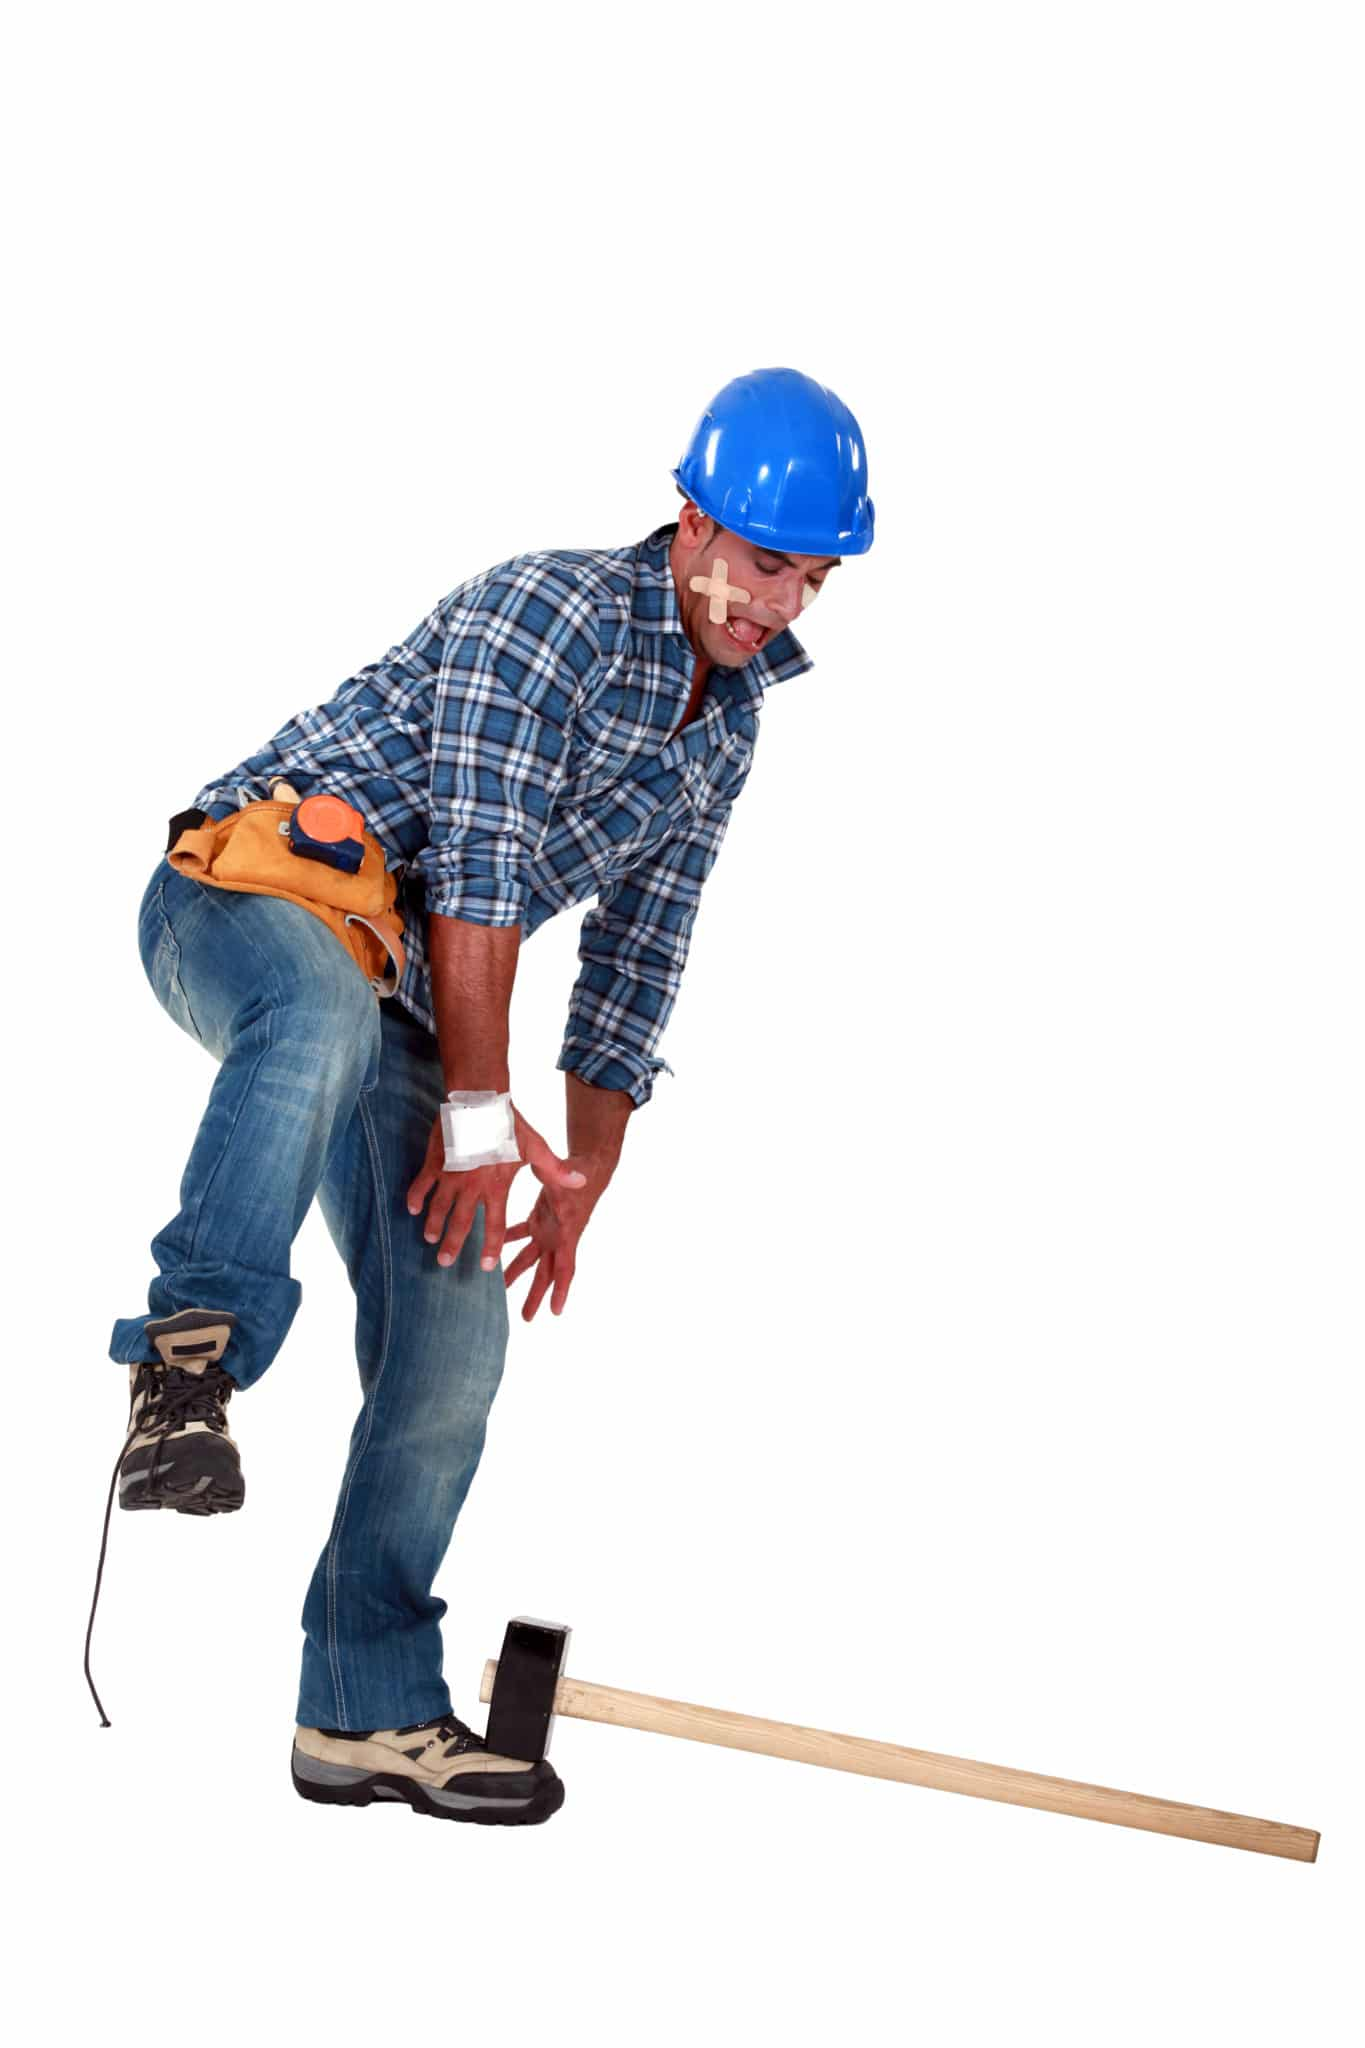 West Caldwell Workers Compensation Attorney